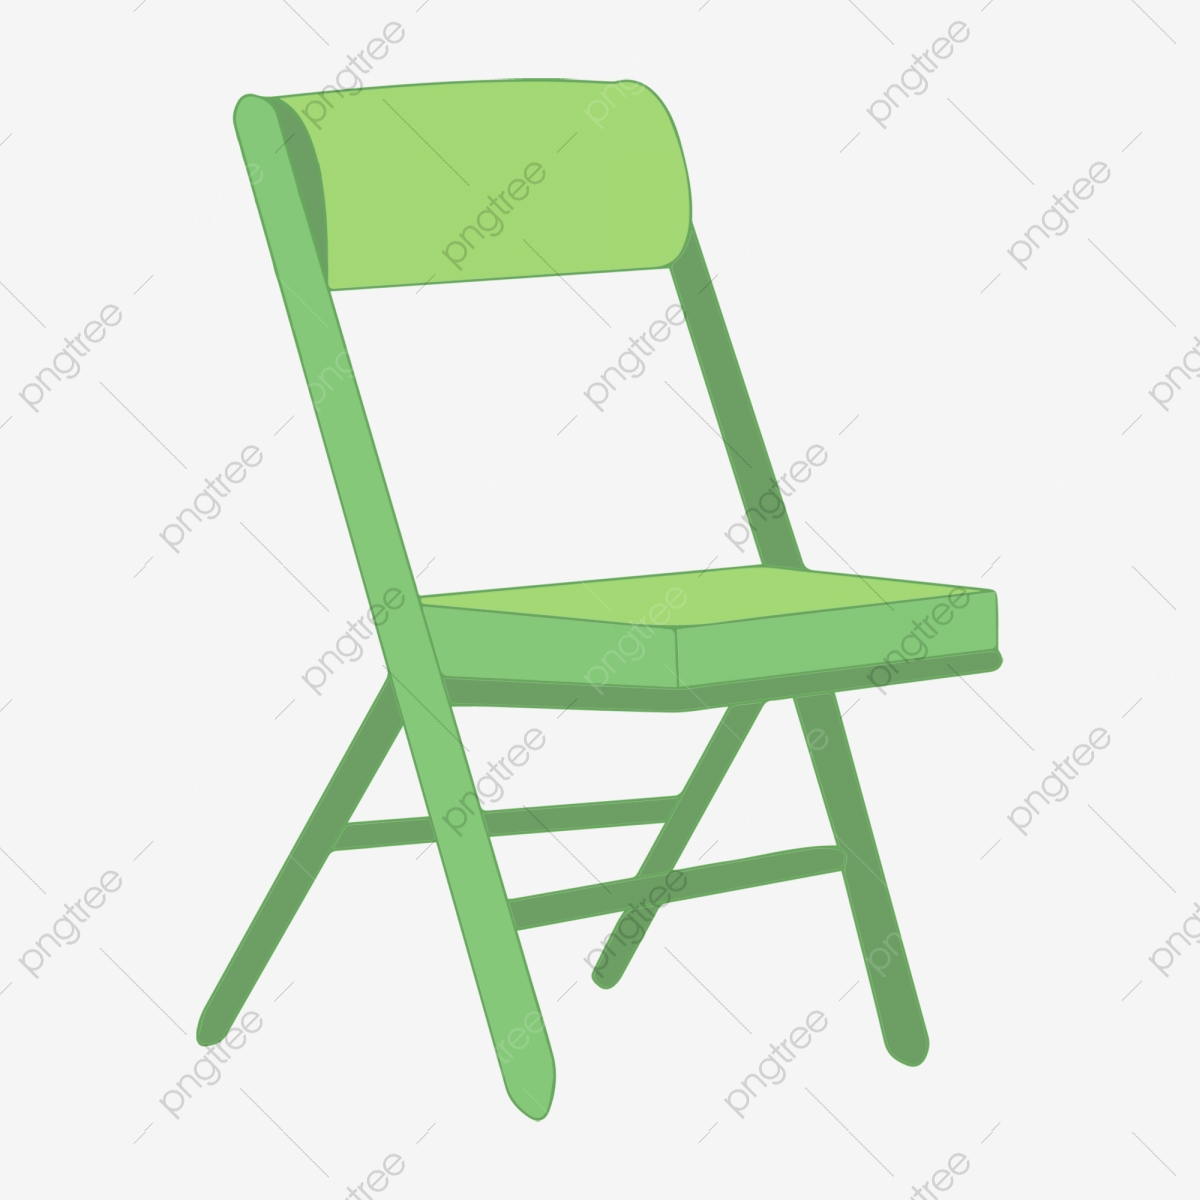 Green Folding Chair Seat Chair Furniture Png Transparent